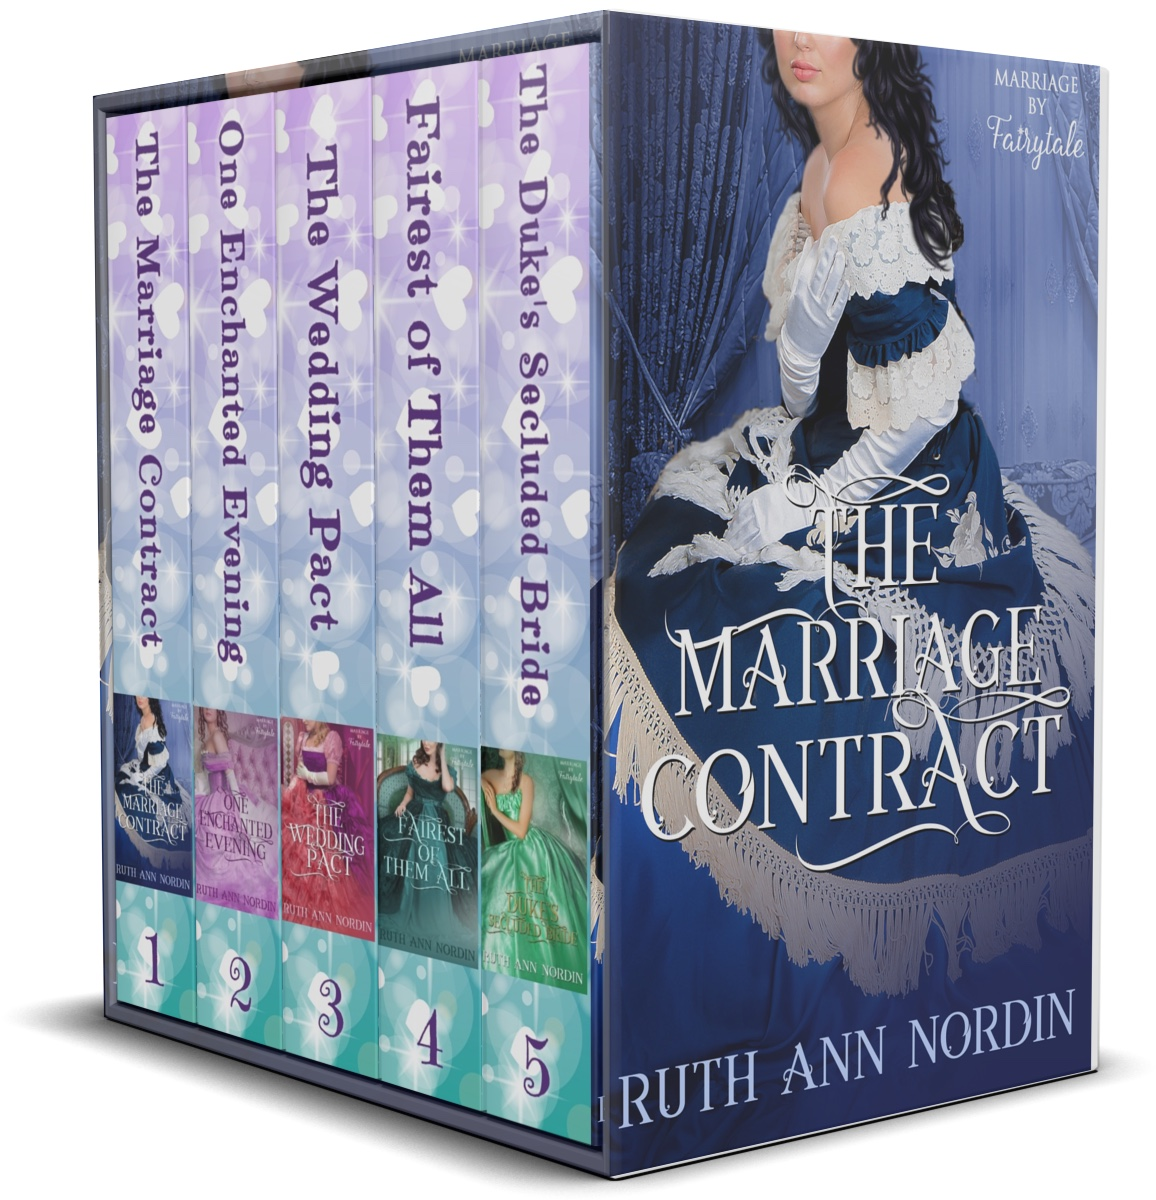 Marriage by Fairytale Series Boxed Set 3D Cover